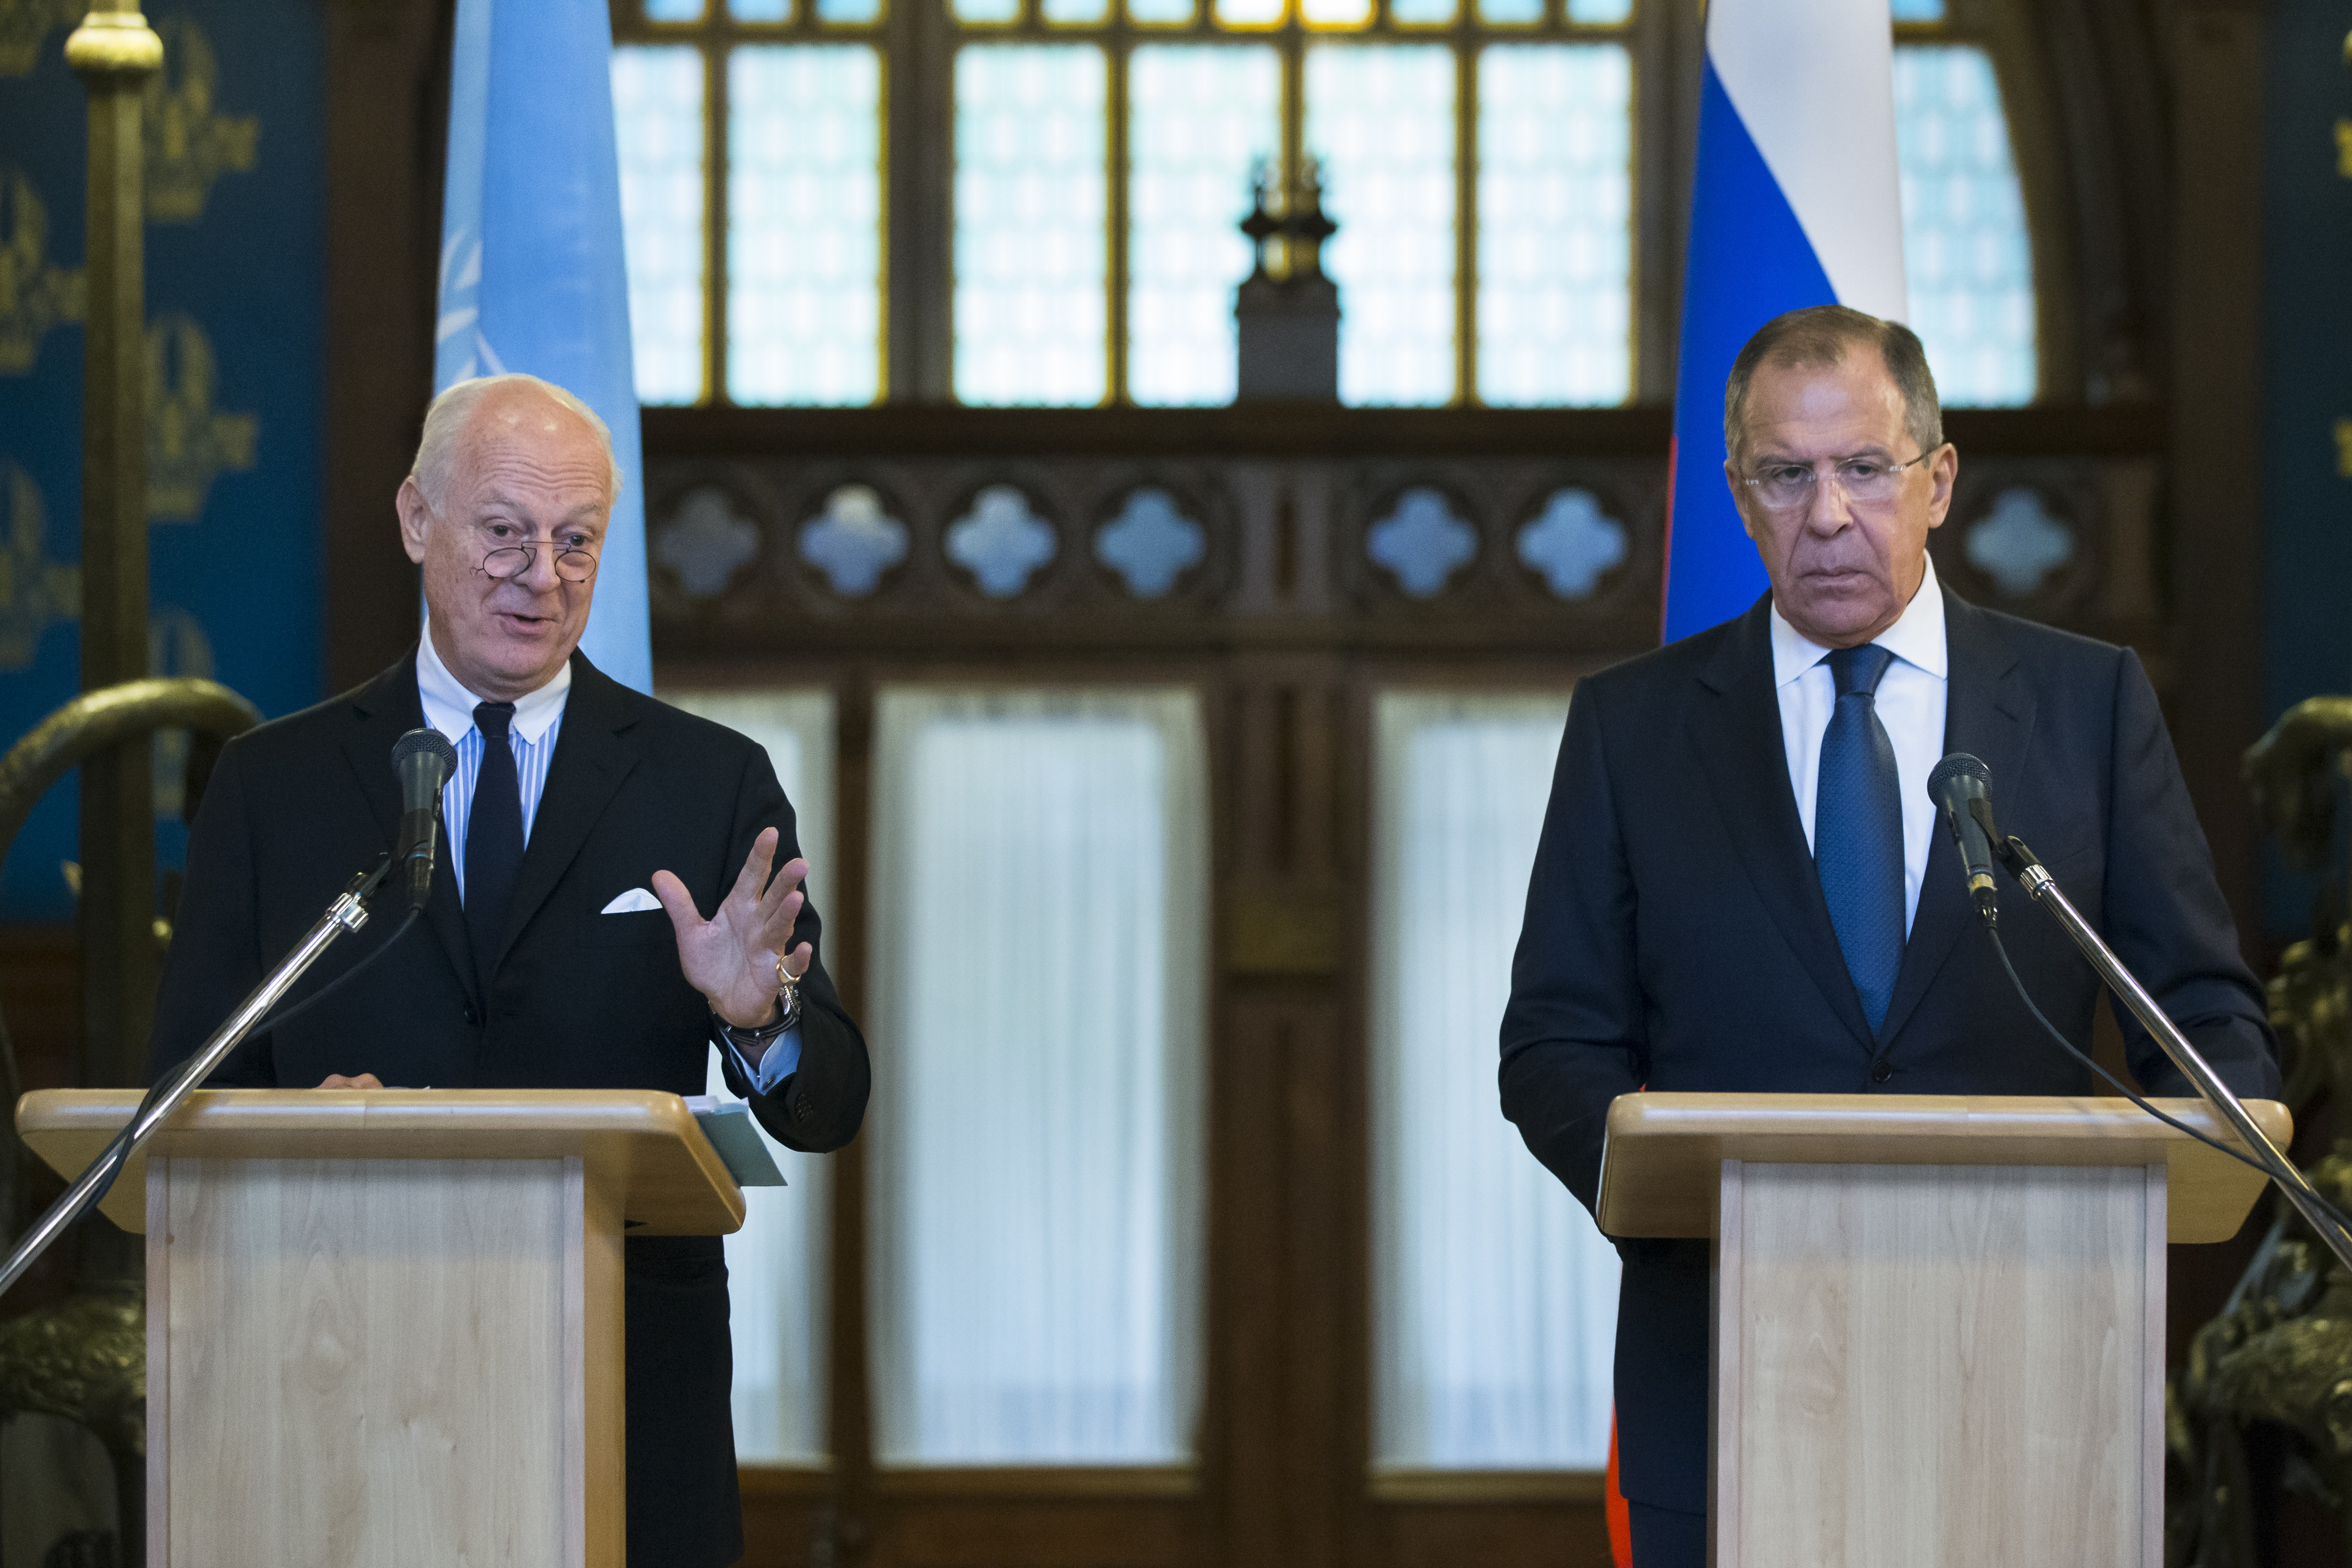 Russian Foreign Minister Sergey Lavrov, right, listens as U.N. Special Envoy for Syria Staffan de Mistura speaks during a news conference following their talks in Moscow, Russia, Nov. 4, 2015.